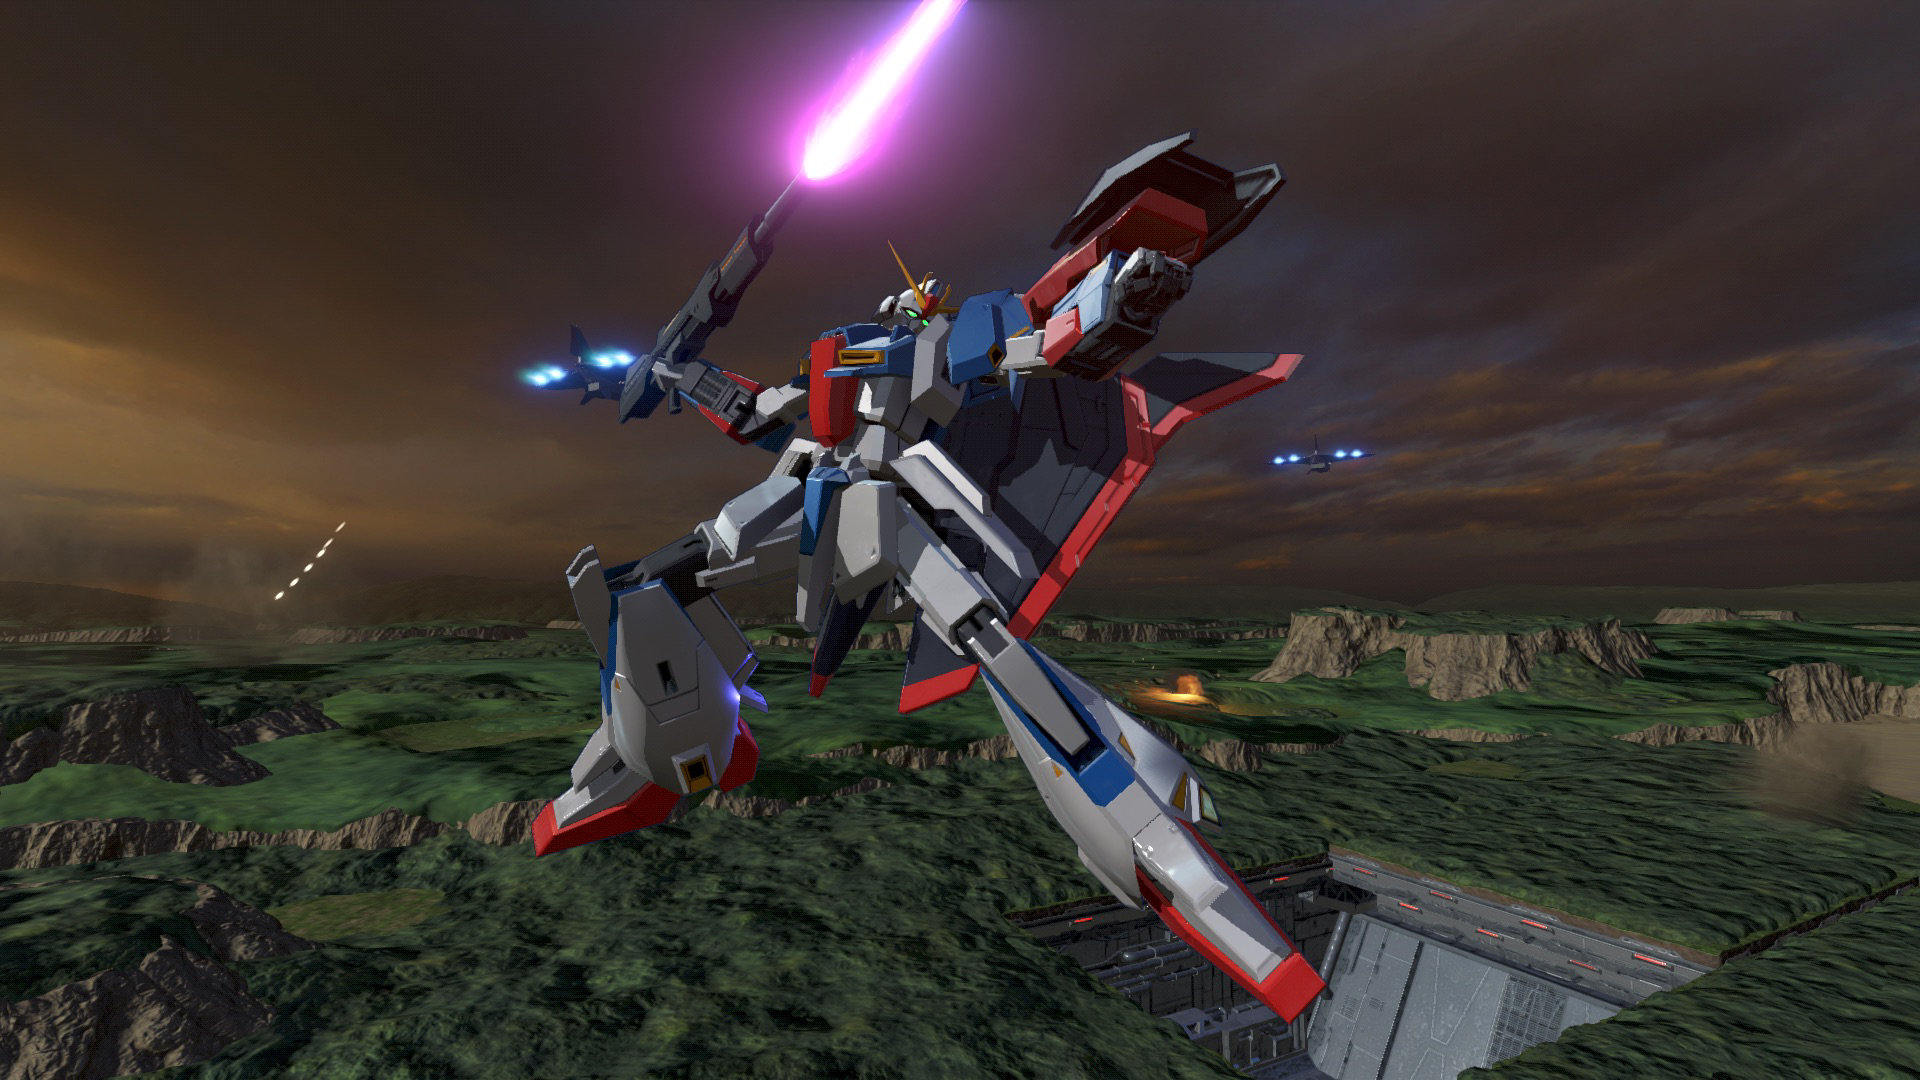 gundam-versus-screen-03-ps4-us-7june17?$